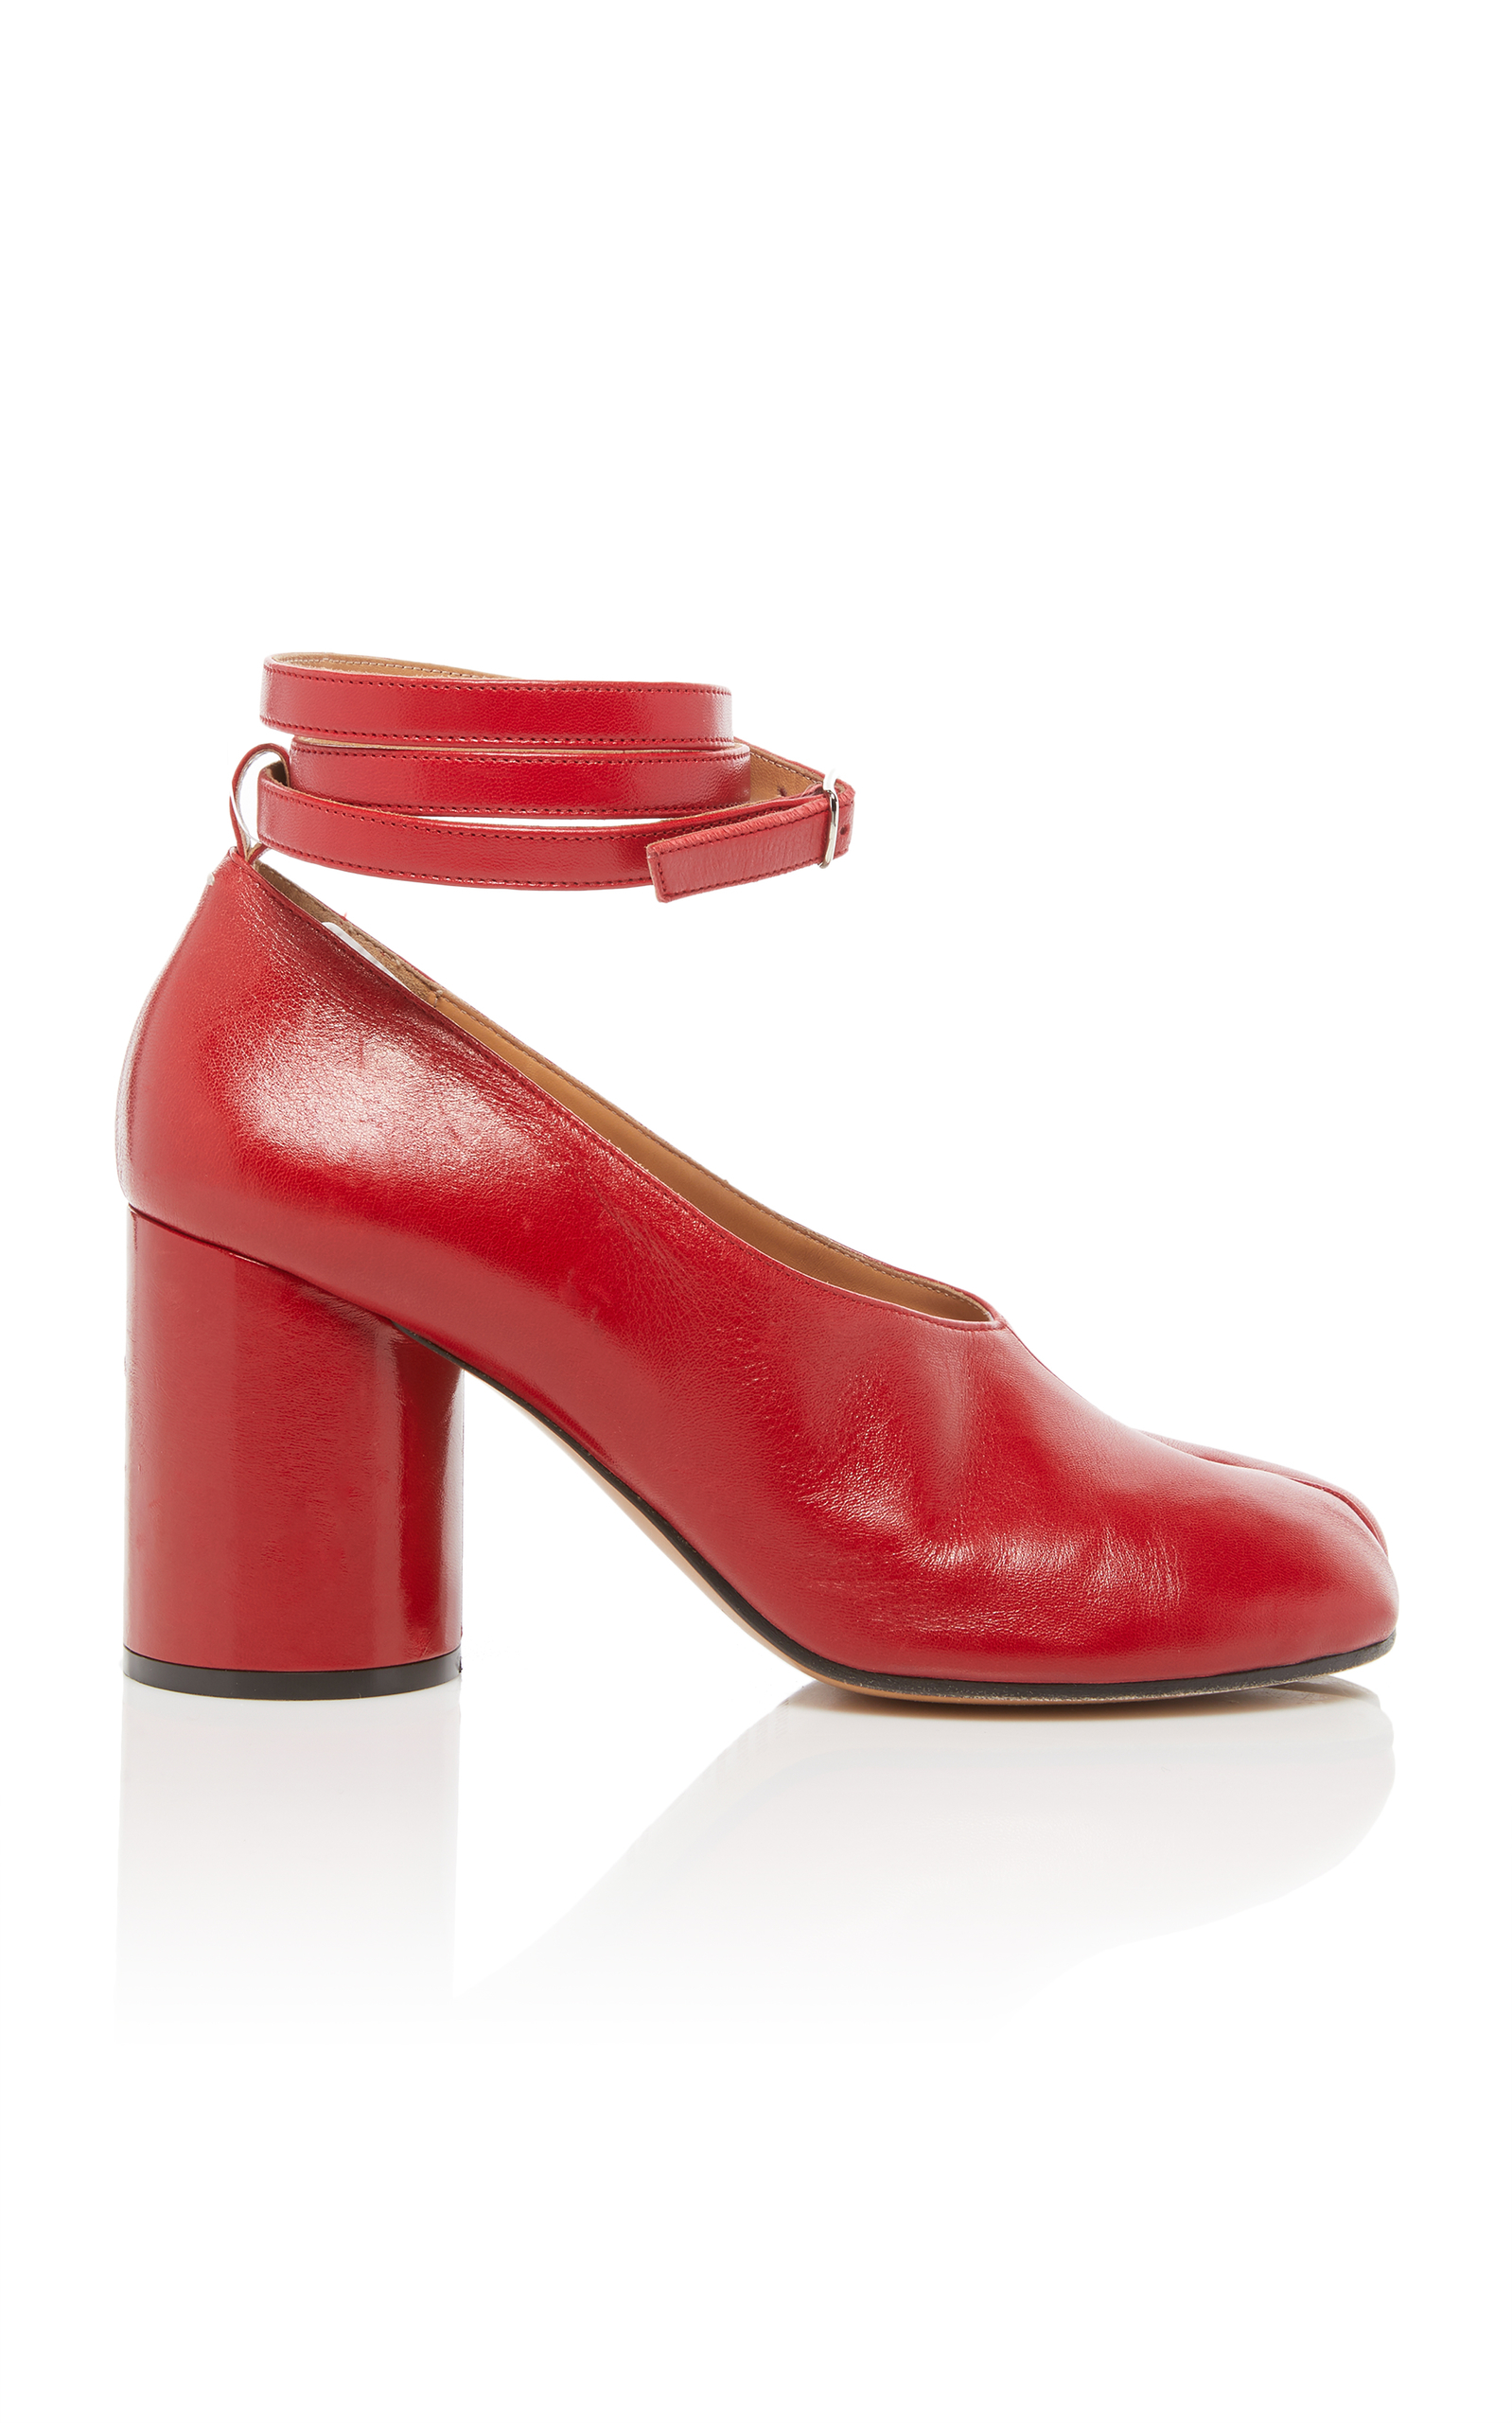 Maison Martin Margiela Tabi Pumps, Red